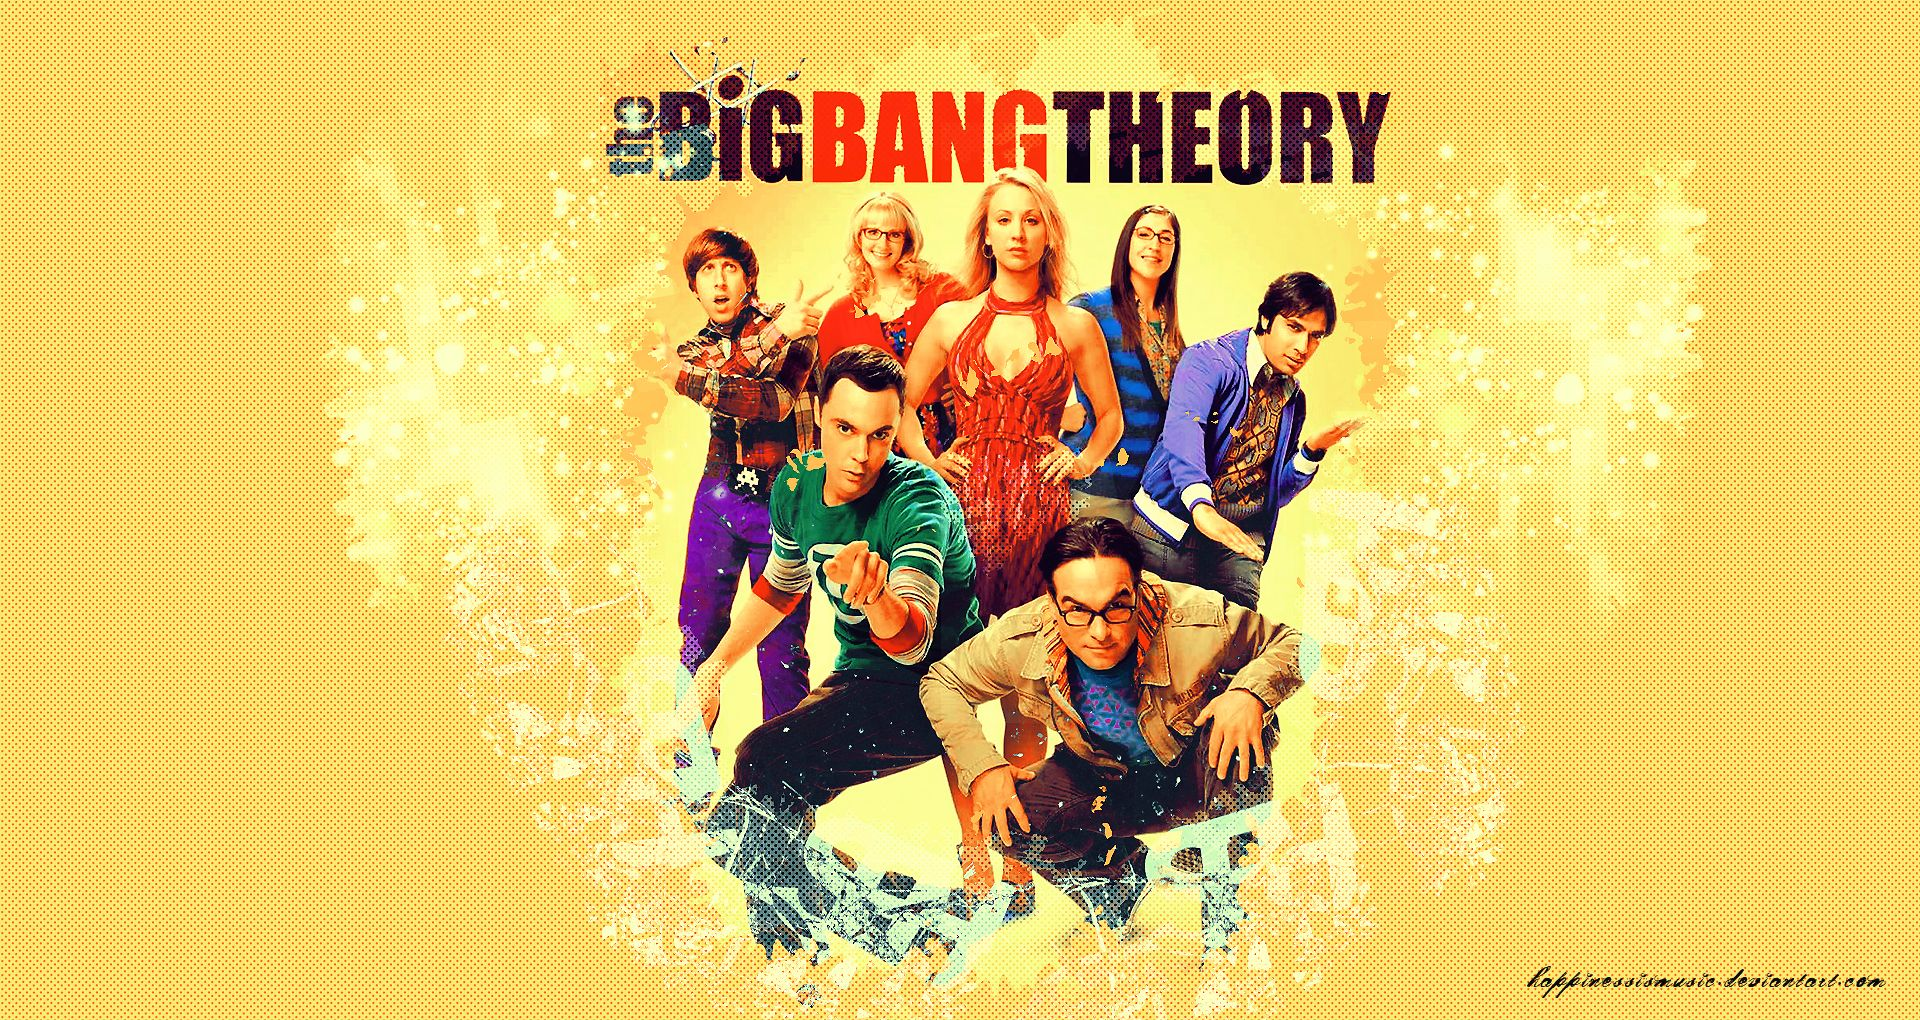 The big bang theory wallpaper 4 by HappinessIsMusic.deviantart.com ...